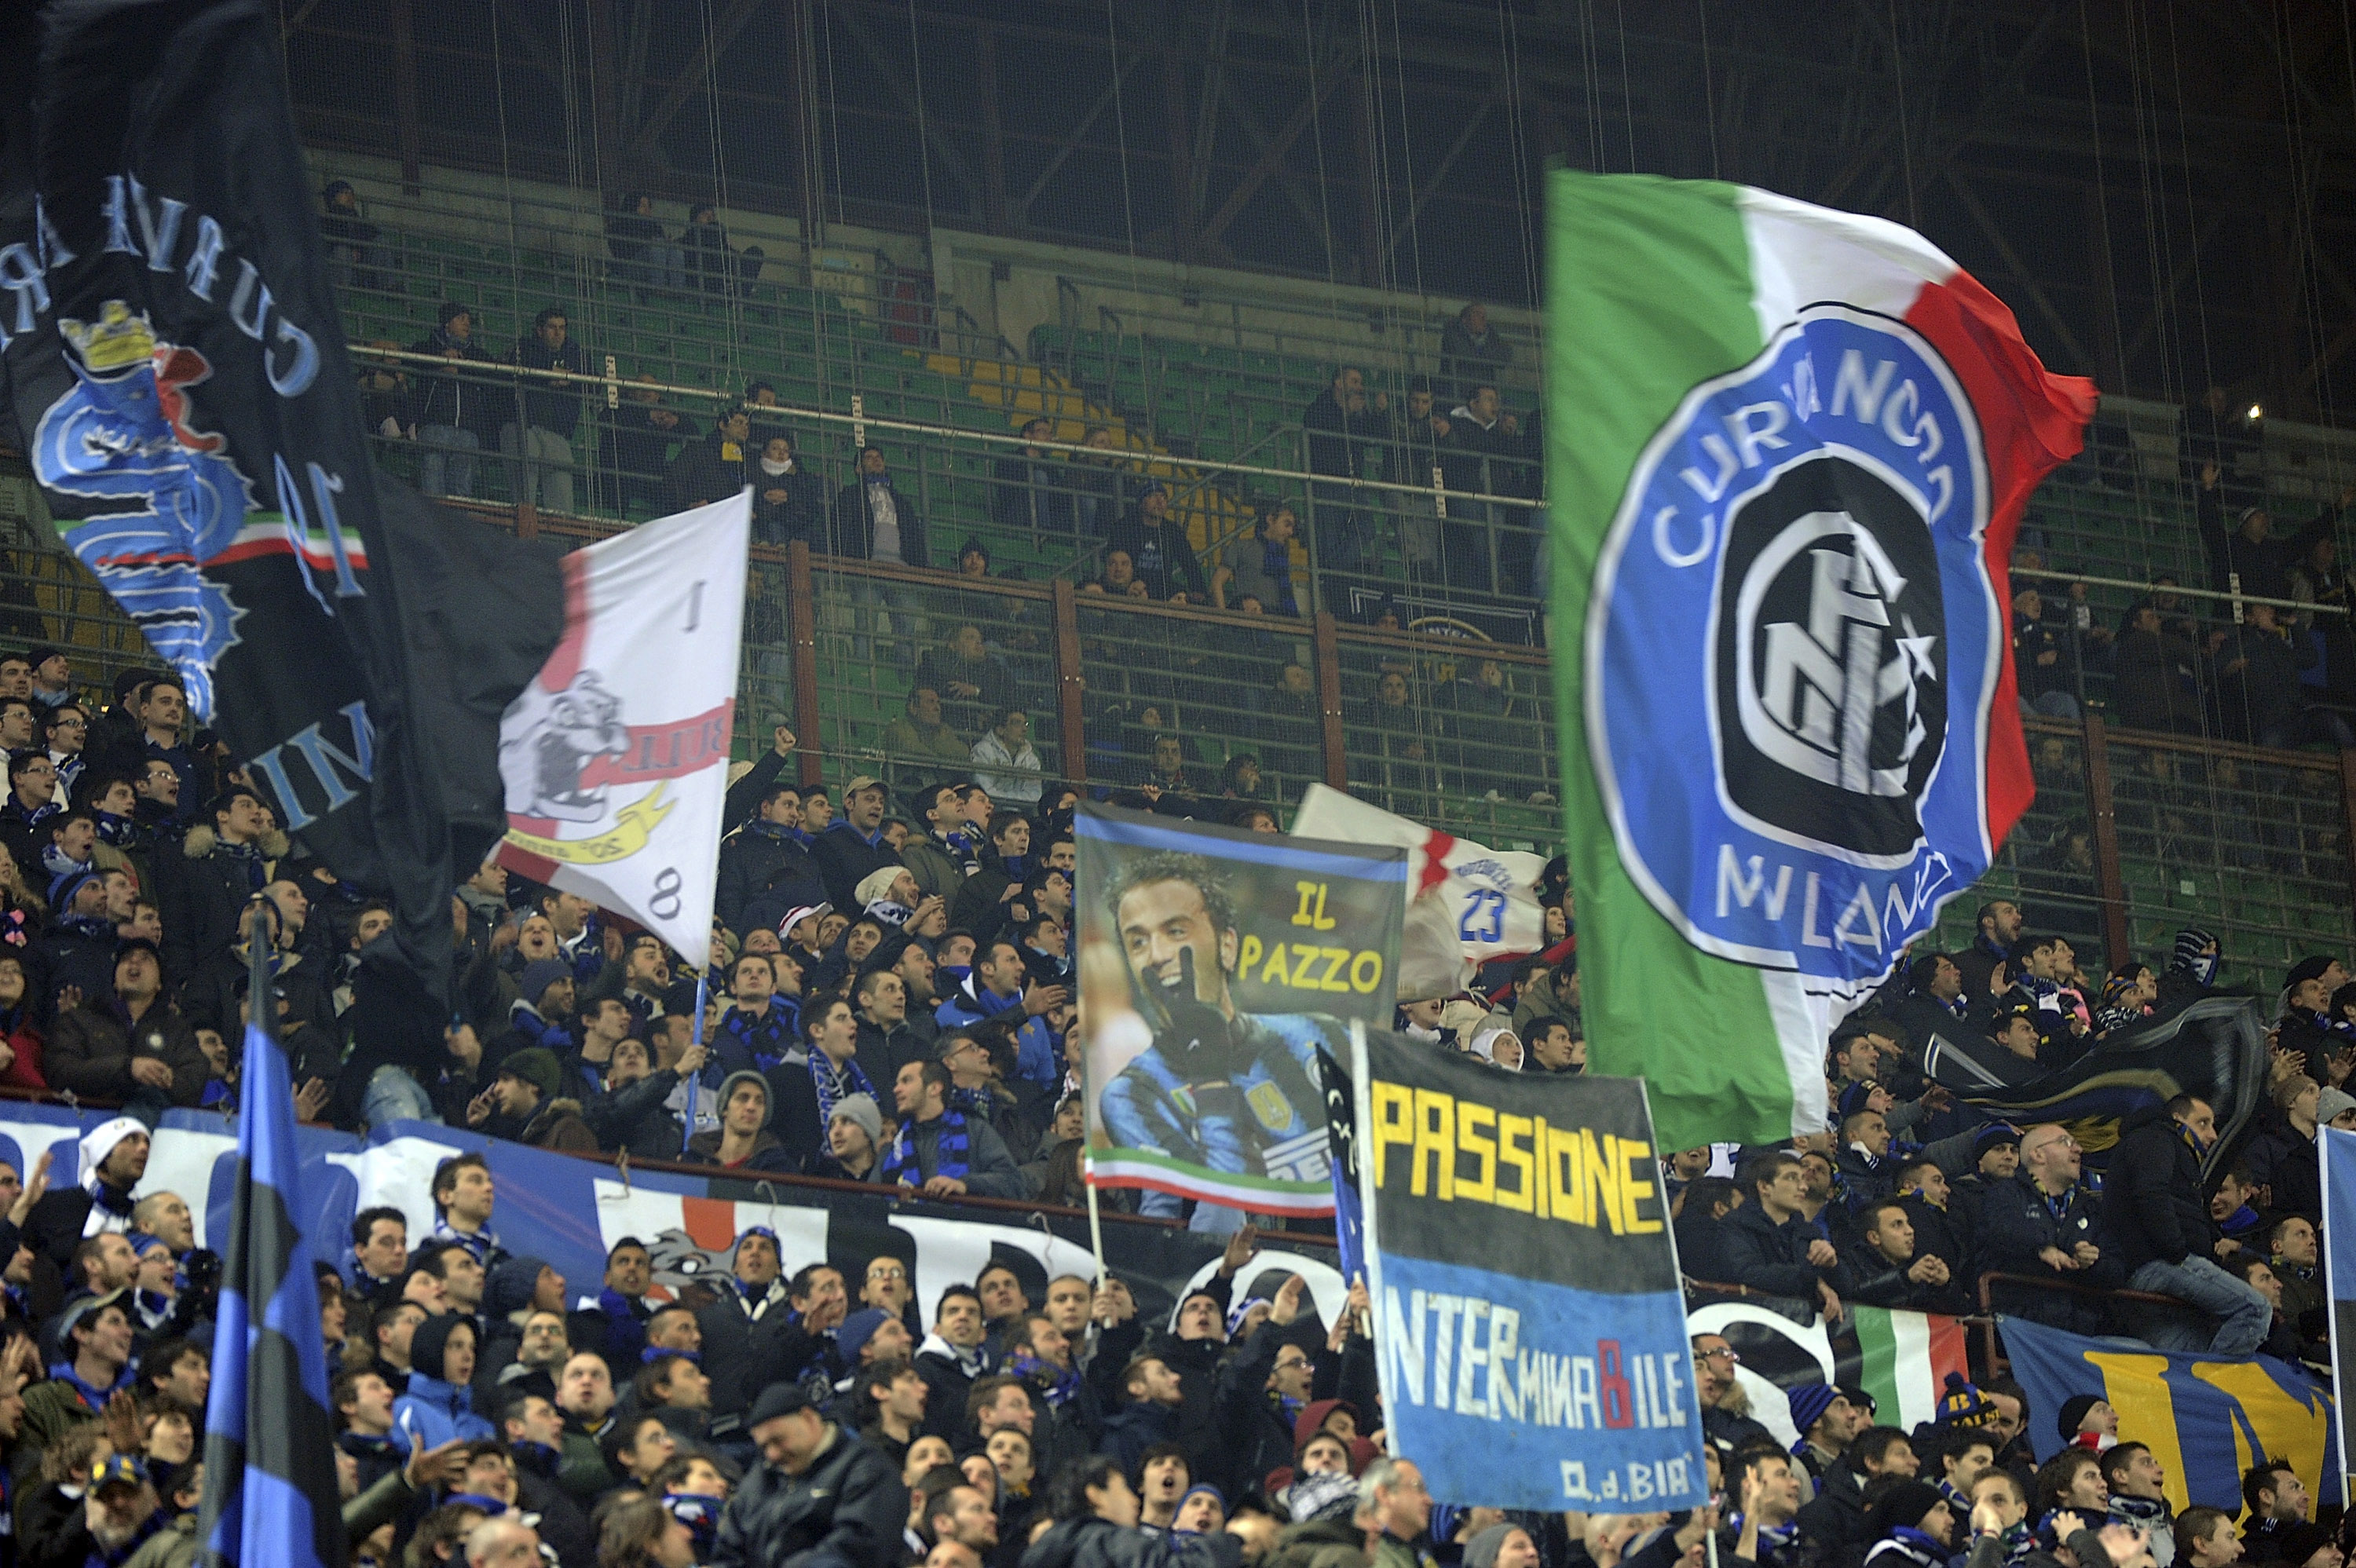 MILAN, ITALY - FEBRUARY 06:  Fans of Inter during the Serie A match between FC Internazionale Milano and AS Roma at Stadio Giuseppe Meazza on February 6, 2011 in Milan, Italy.  (Photo by Dino Panato/Getty Images)